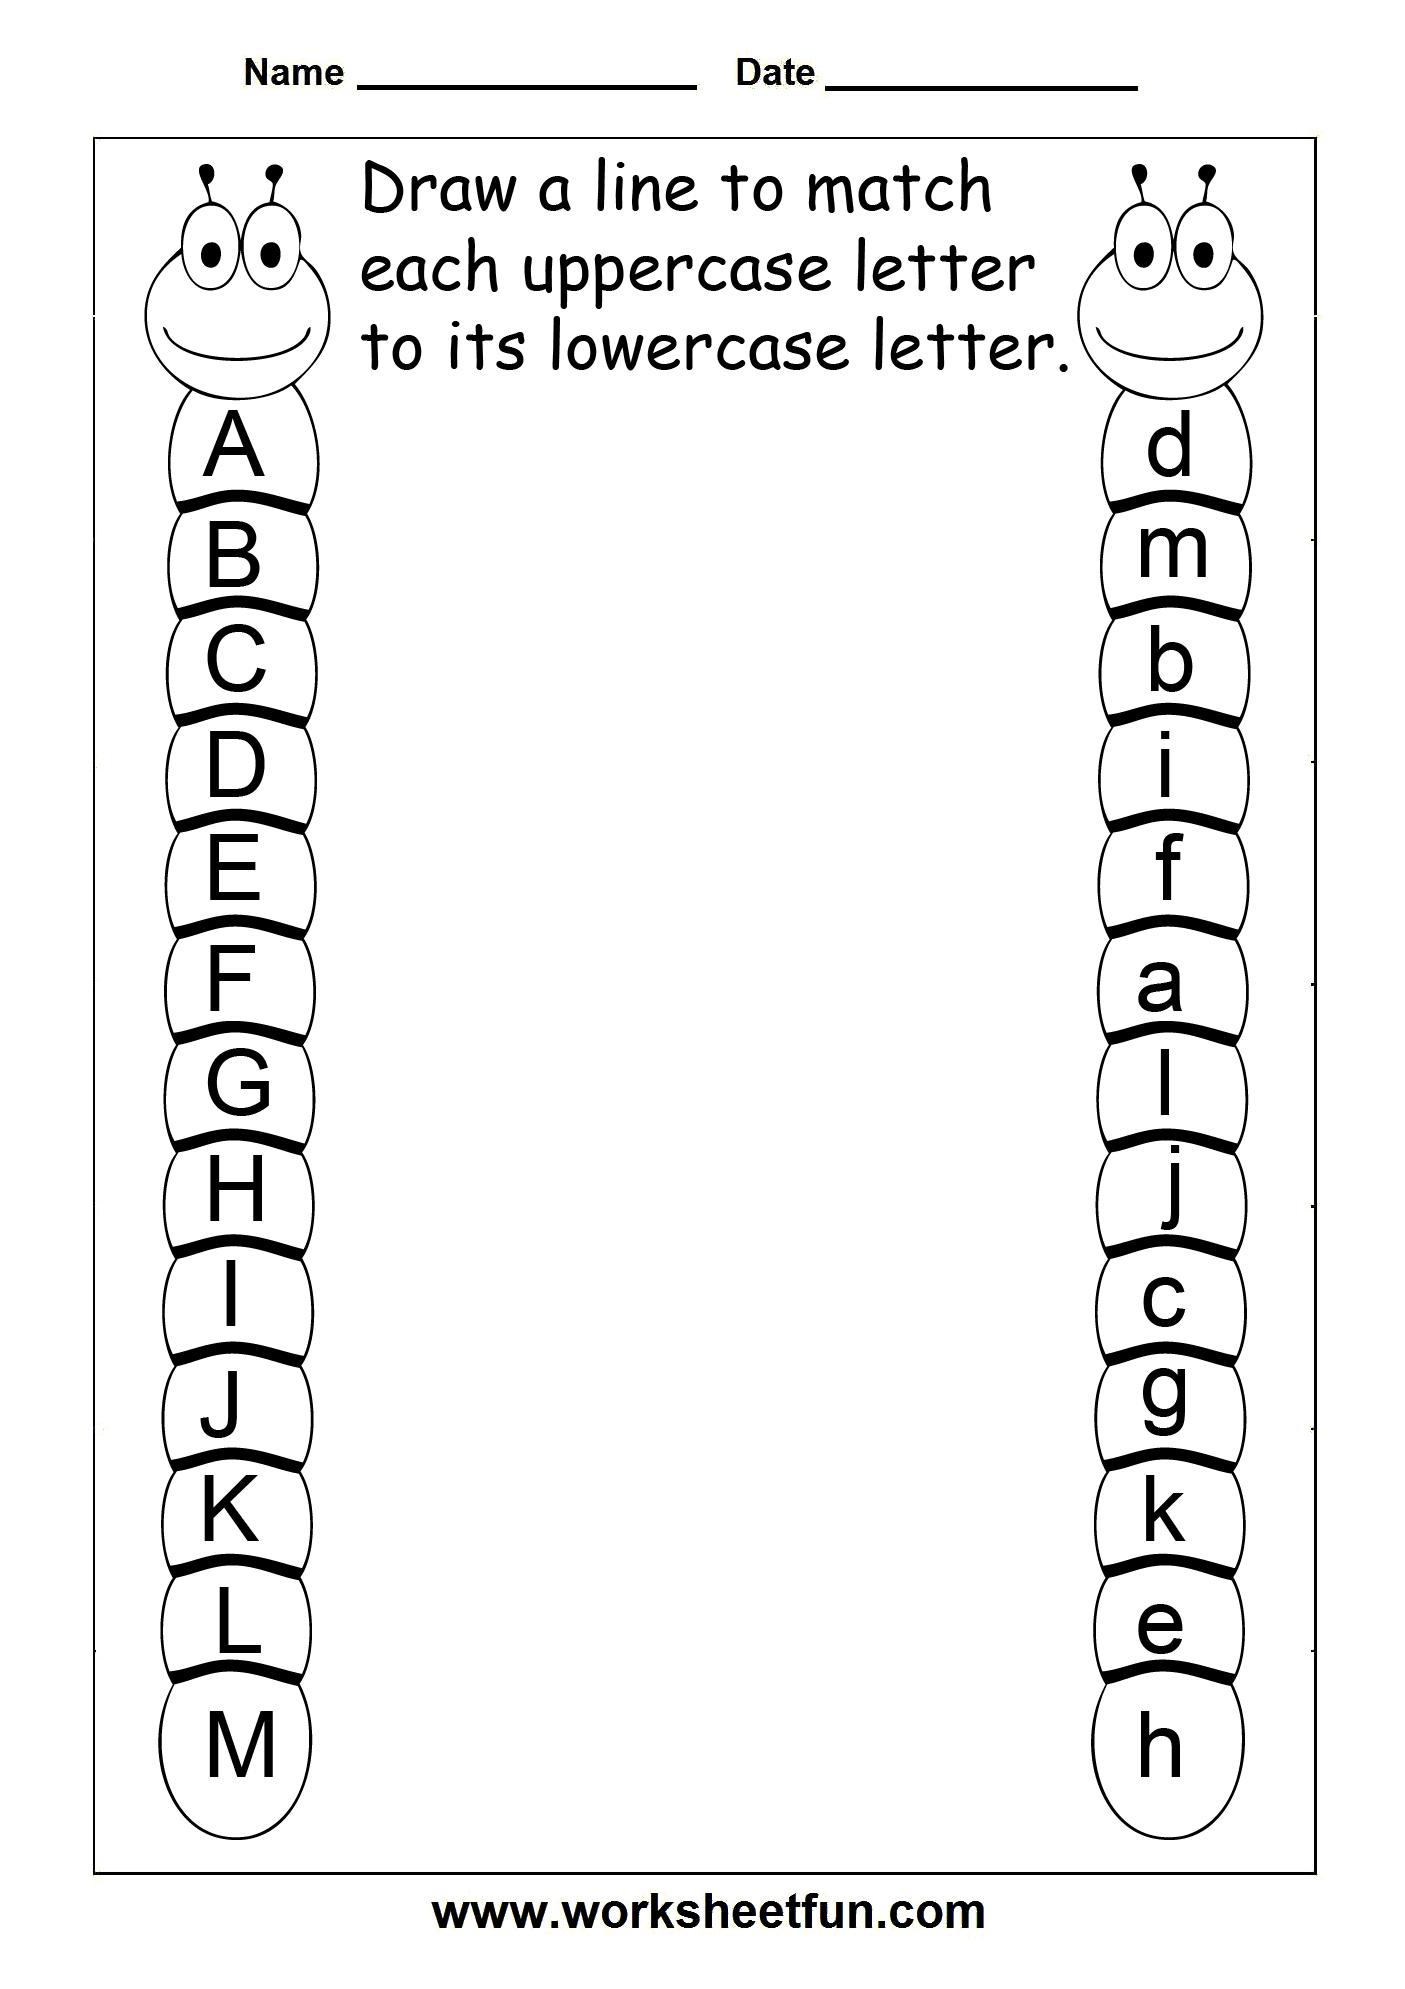 Weirdmailus  Nice  Images About Work Worksheet On Pinterest  Hidden Pictures  With Marvelous  Images About Work Worksheet On Pinterest  Hidden Pictures Color By Numbers And Puzzles With Lovely Cursive Letters Worksheet Also Subtraction Worksheets For St Grade In Addition Comprehension Worksheets For Grade  And Antonym Worksheets As Well As Timeline Worksheets Additionally Number Of Atoms In A Formula Worksheet Answers From Pinterestcom With Weirdmailus  Marvelous  Images About Work Worksheet On Pinterest  Hidden Pictures  With Lovely  Images About Work Worksheet On Pinterest  Hidden Pictures Color By Numbers And Puzzles And Nice Cursive Letters Worksheet Also Subtraction Worksheets For St Grade In Addition Comprehension Worksheets For Grade  From Pinterestcom